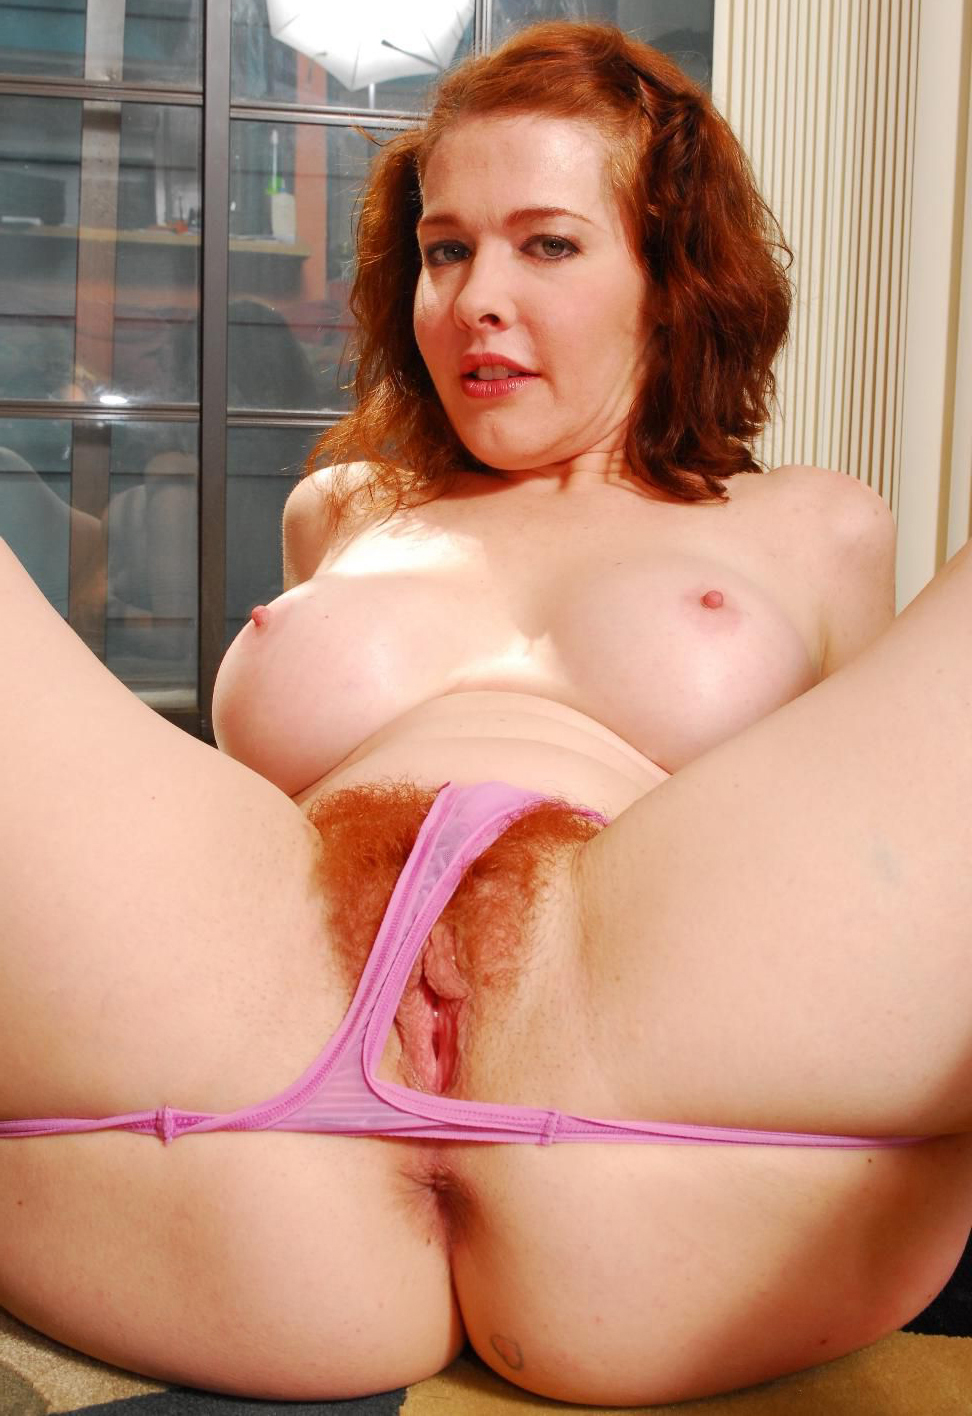 Amateur Red Head Teen Creampie